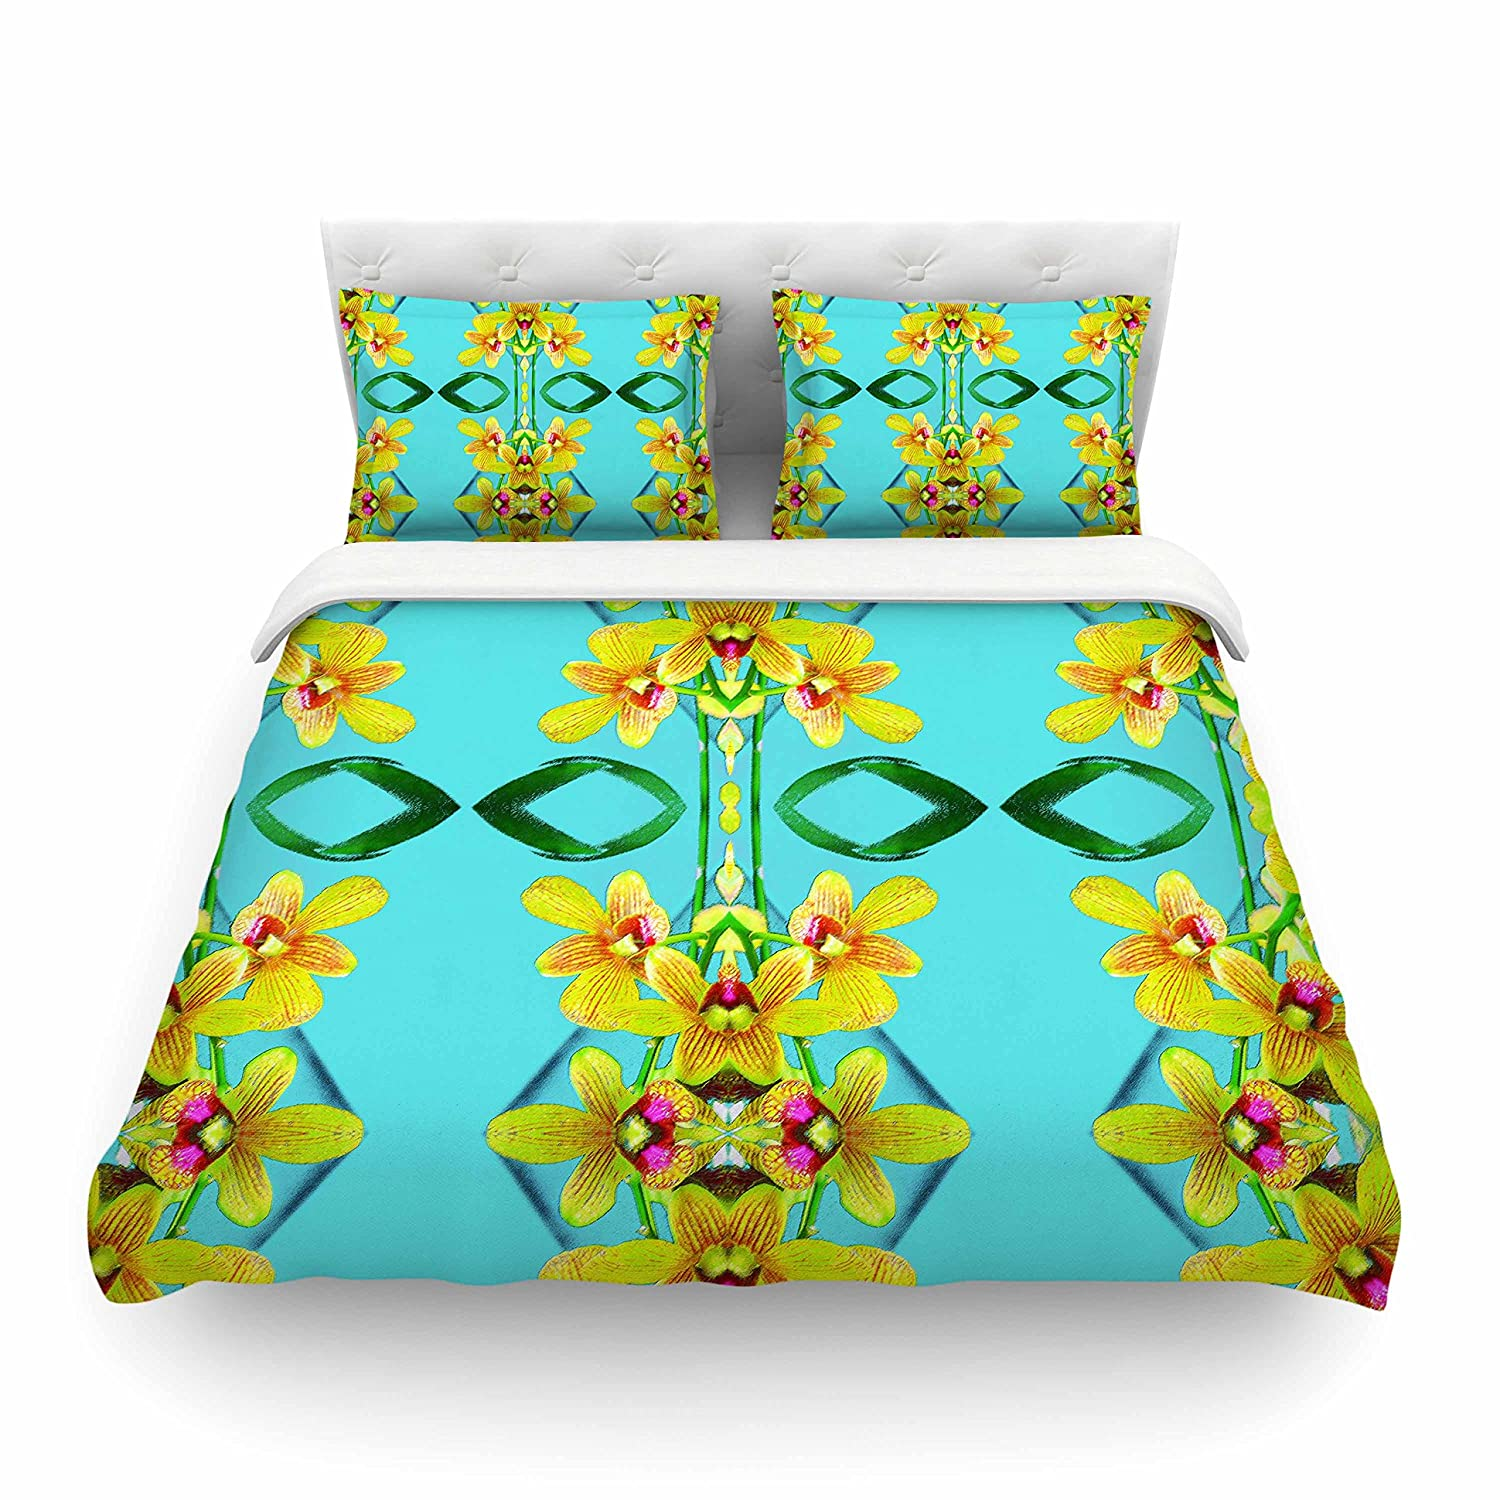 68 by 88-Inch KESS InHouse Dawid Roc  Tropical Floral Orchids 3 Teal Floral Twin Cotton Duvet Cover